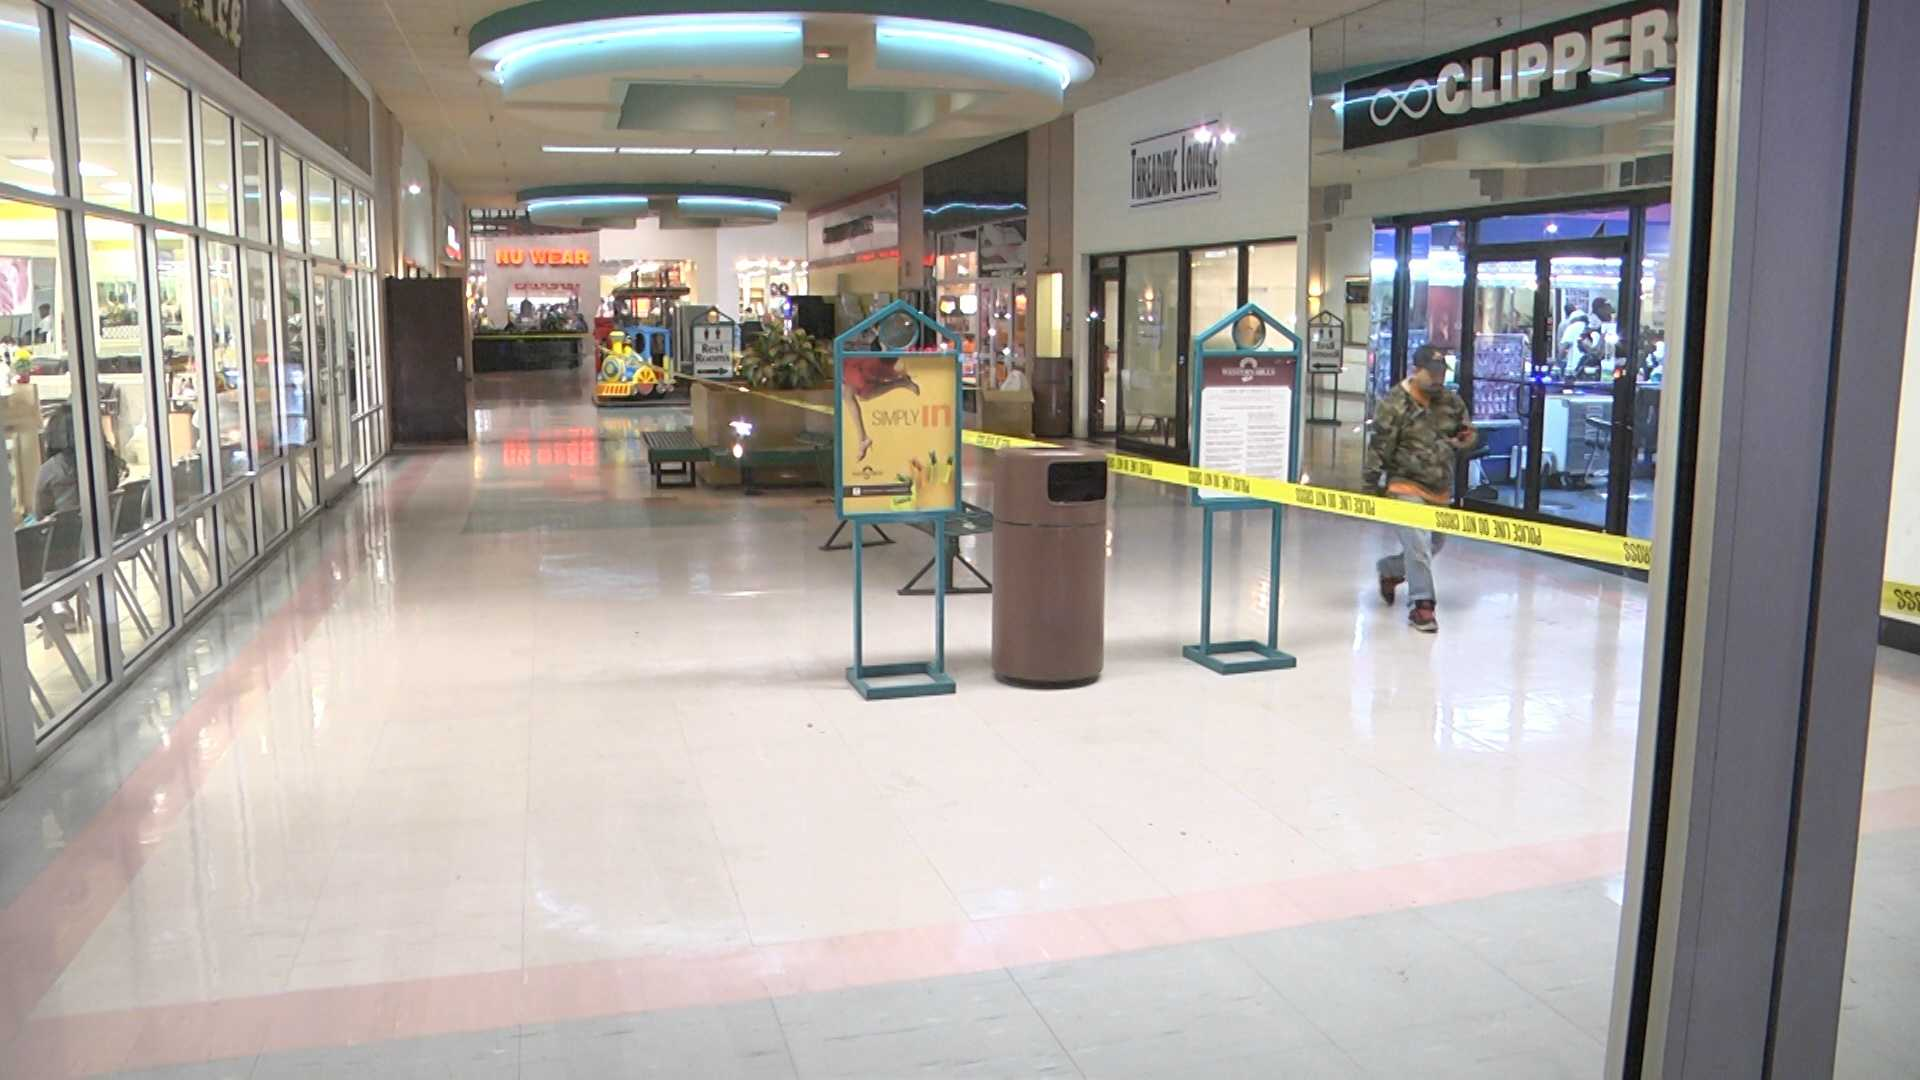 A 5-year-old boy is recovering Saturday after being caught in the crossfire during a shooting at a Fairfield mall Friday evening.